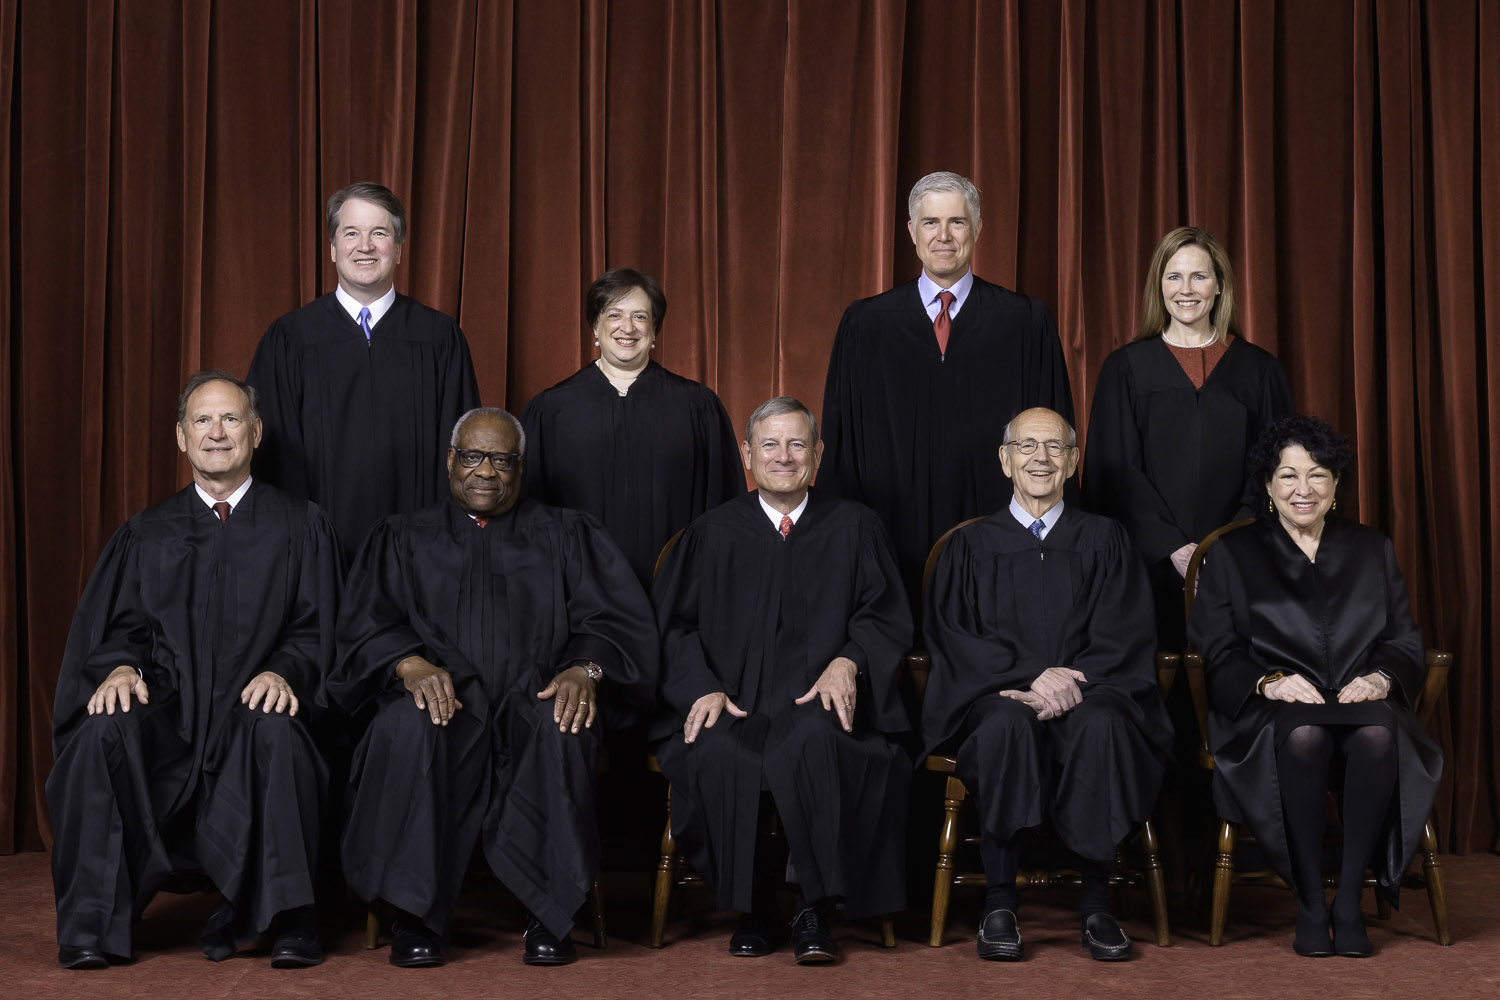 The Supreme Court could allow attacks to marriage equality just as they are with abortion